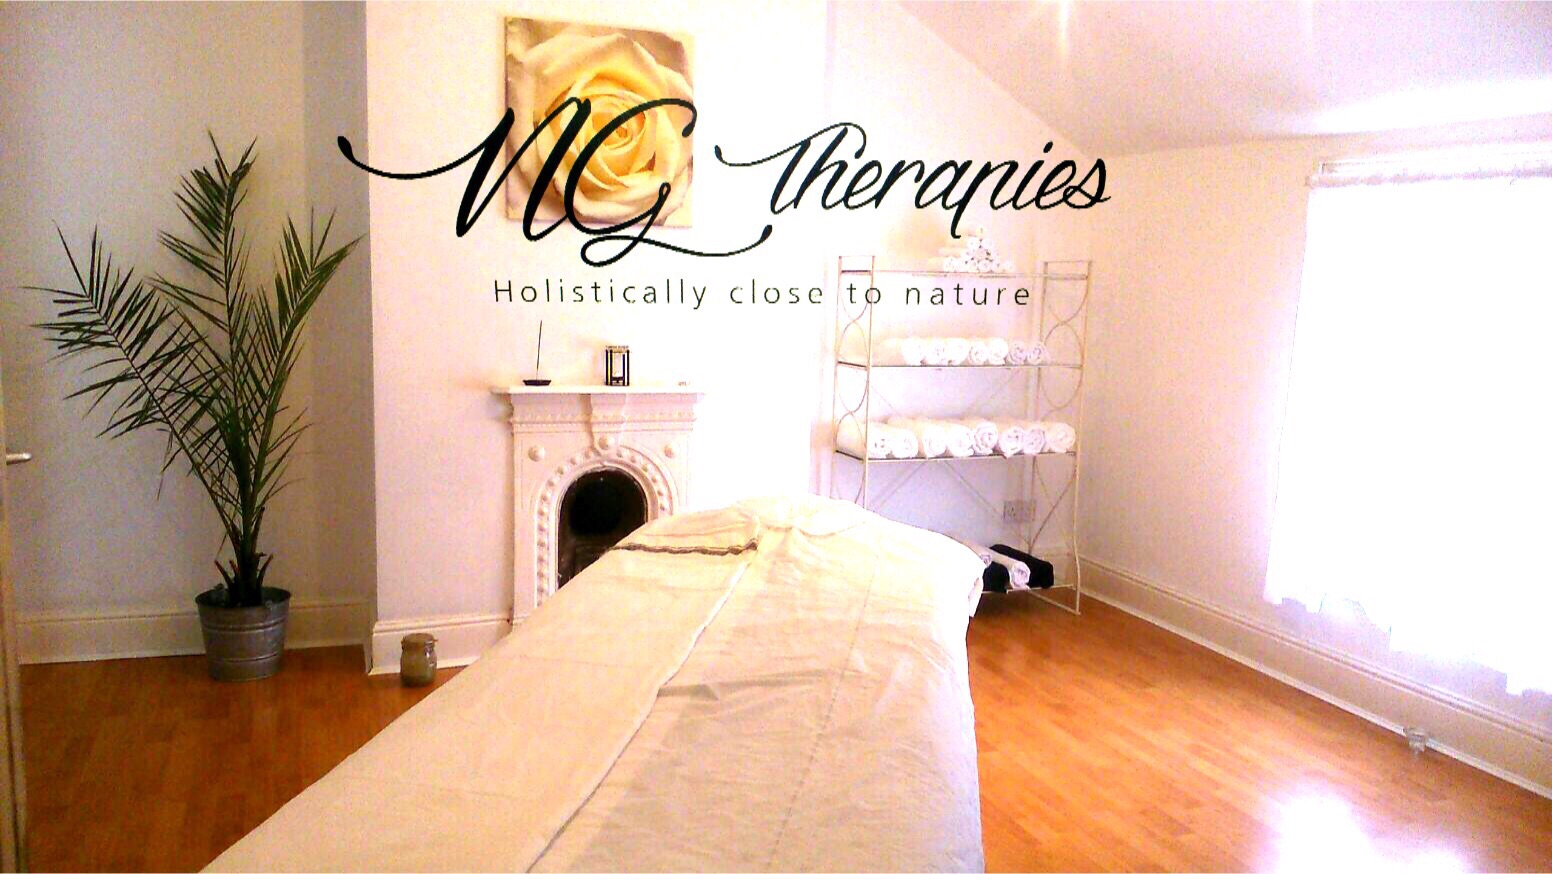 NG Therapies massage at Clear Medical